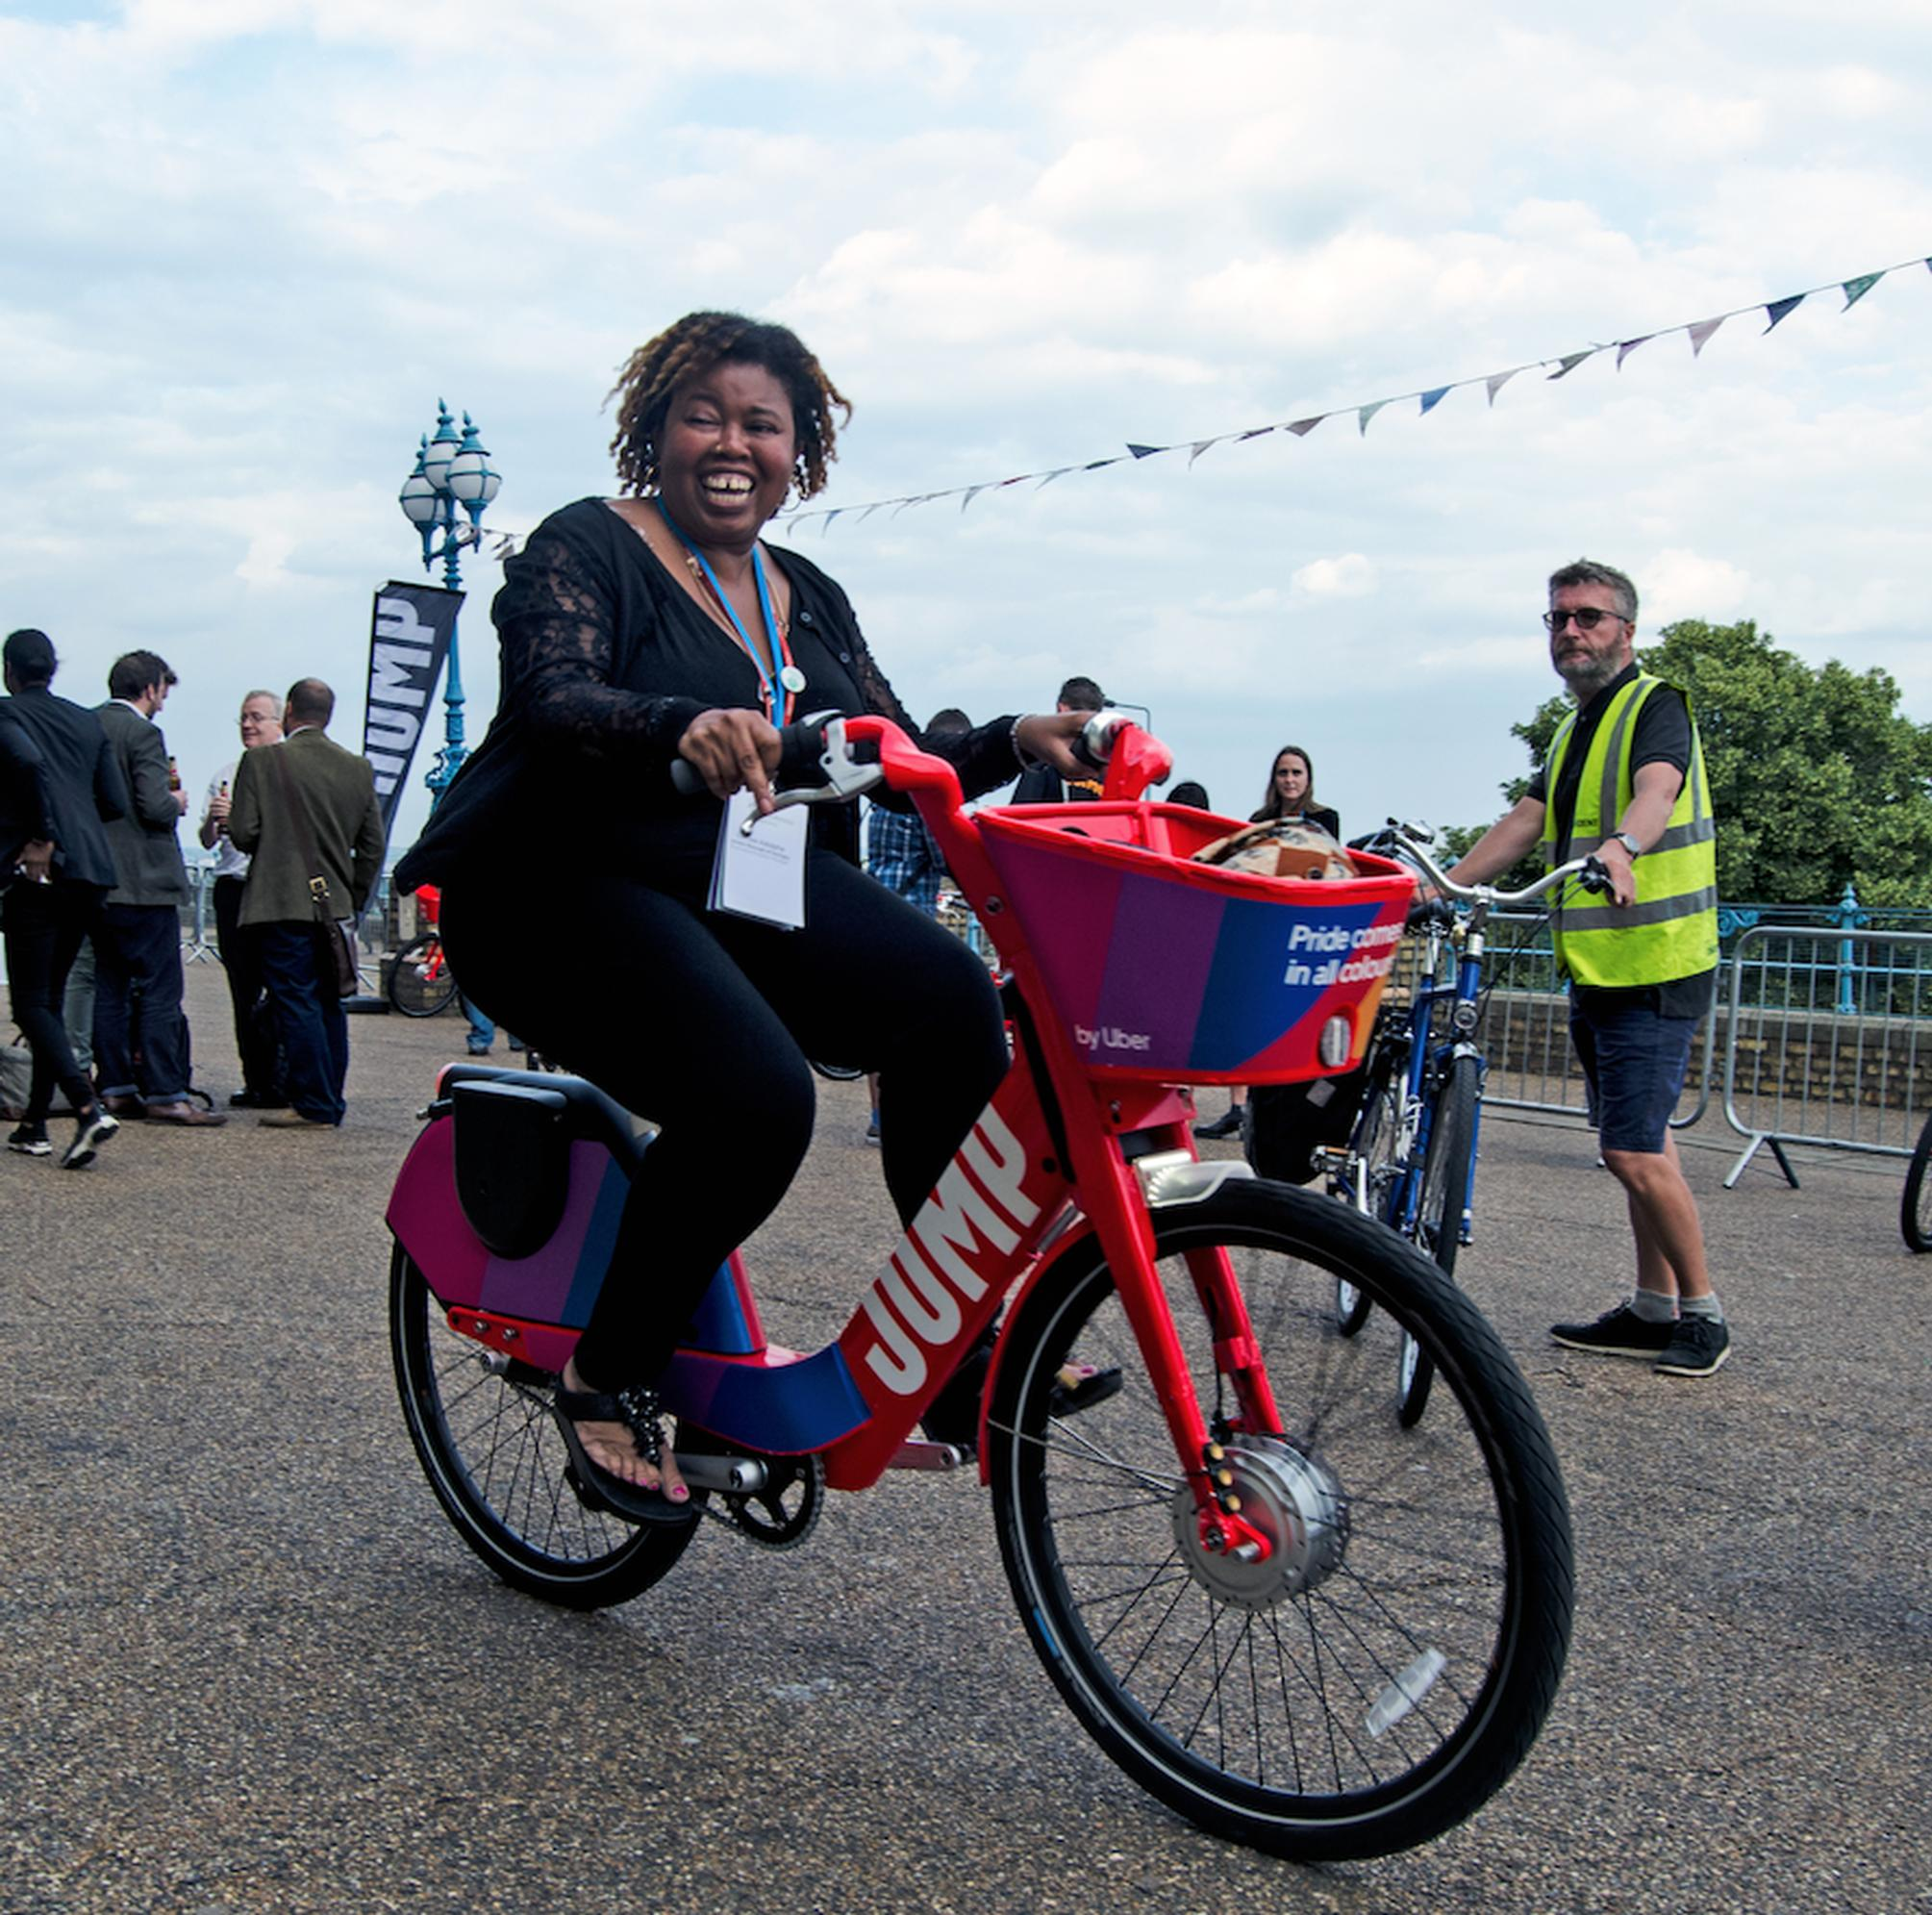 The event ended with a led cycle ride on Jump e-bikes from Alexandra Palace to Crouch End